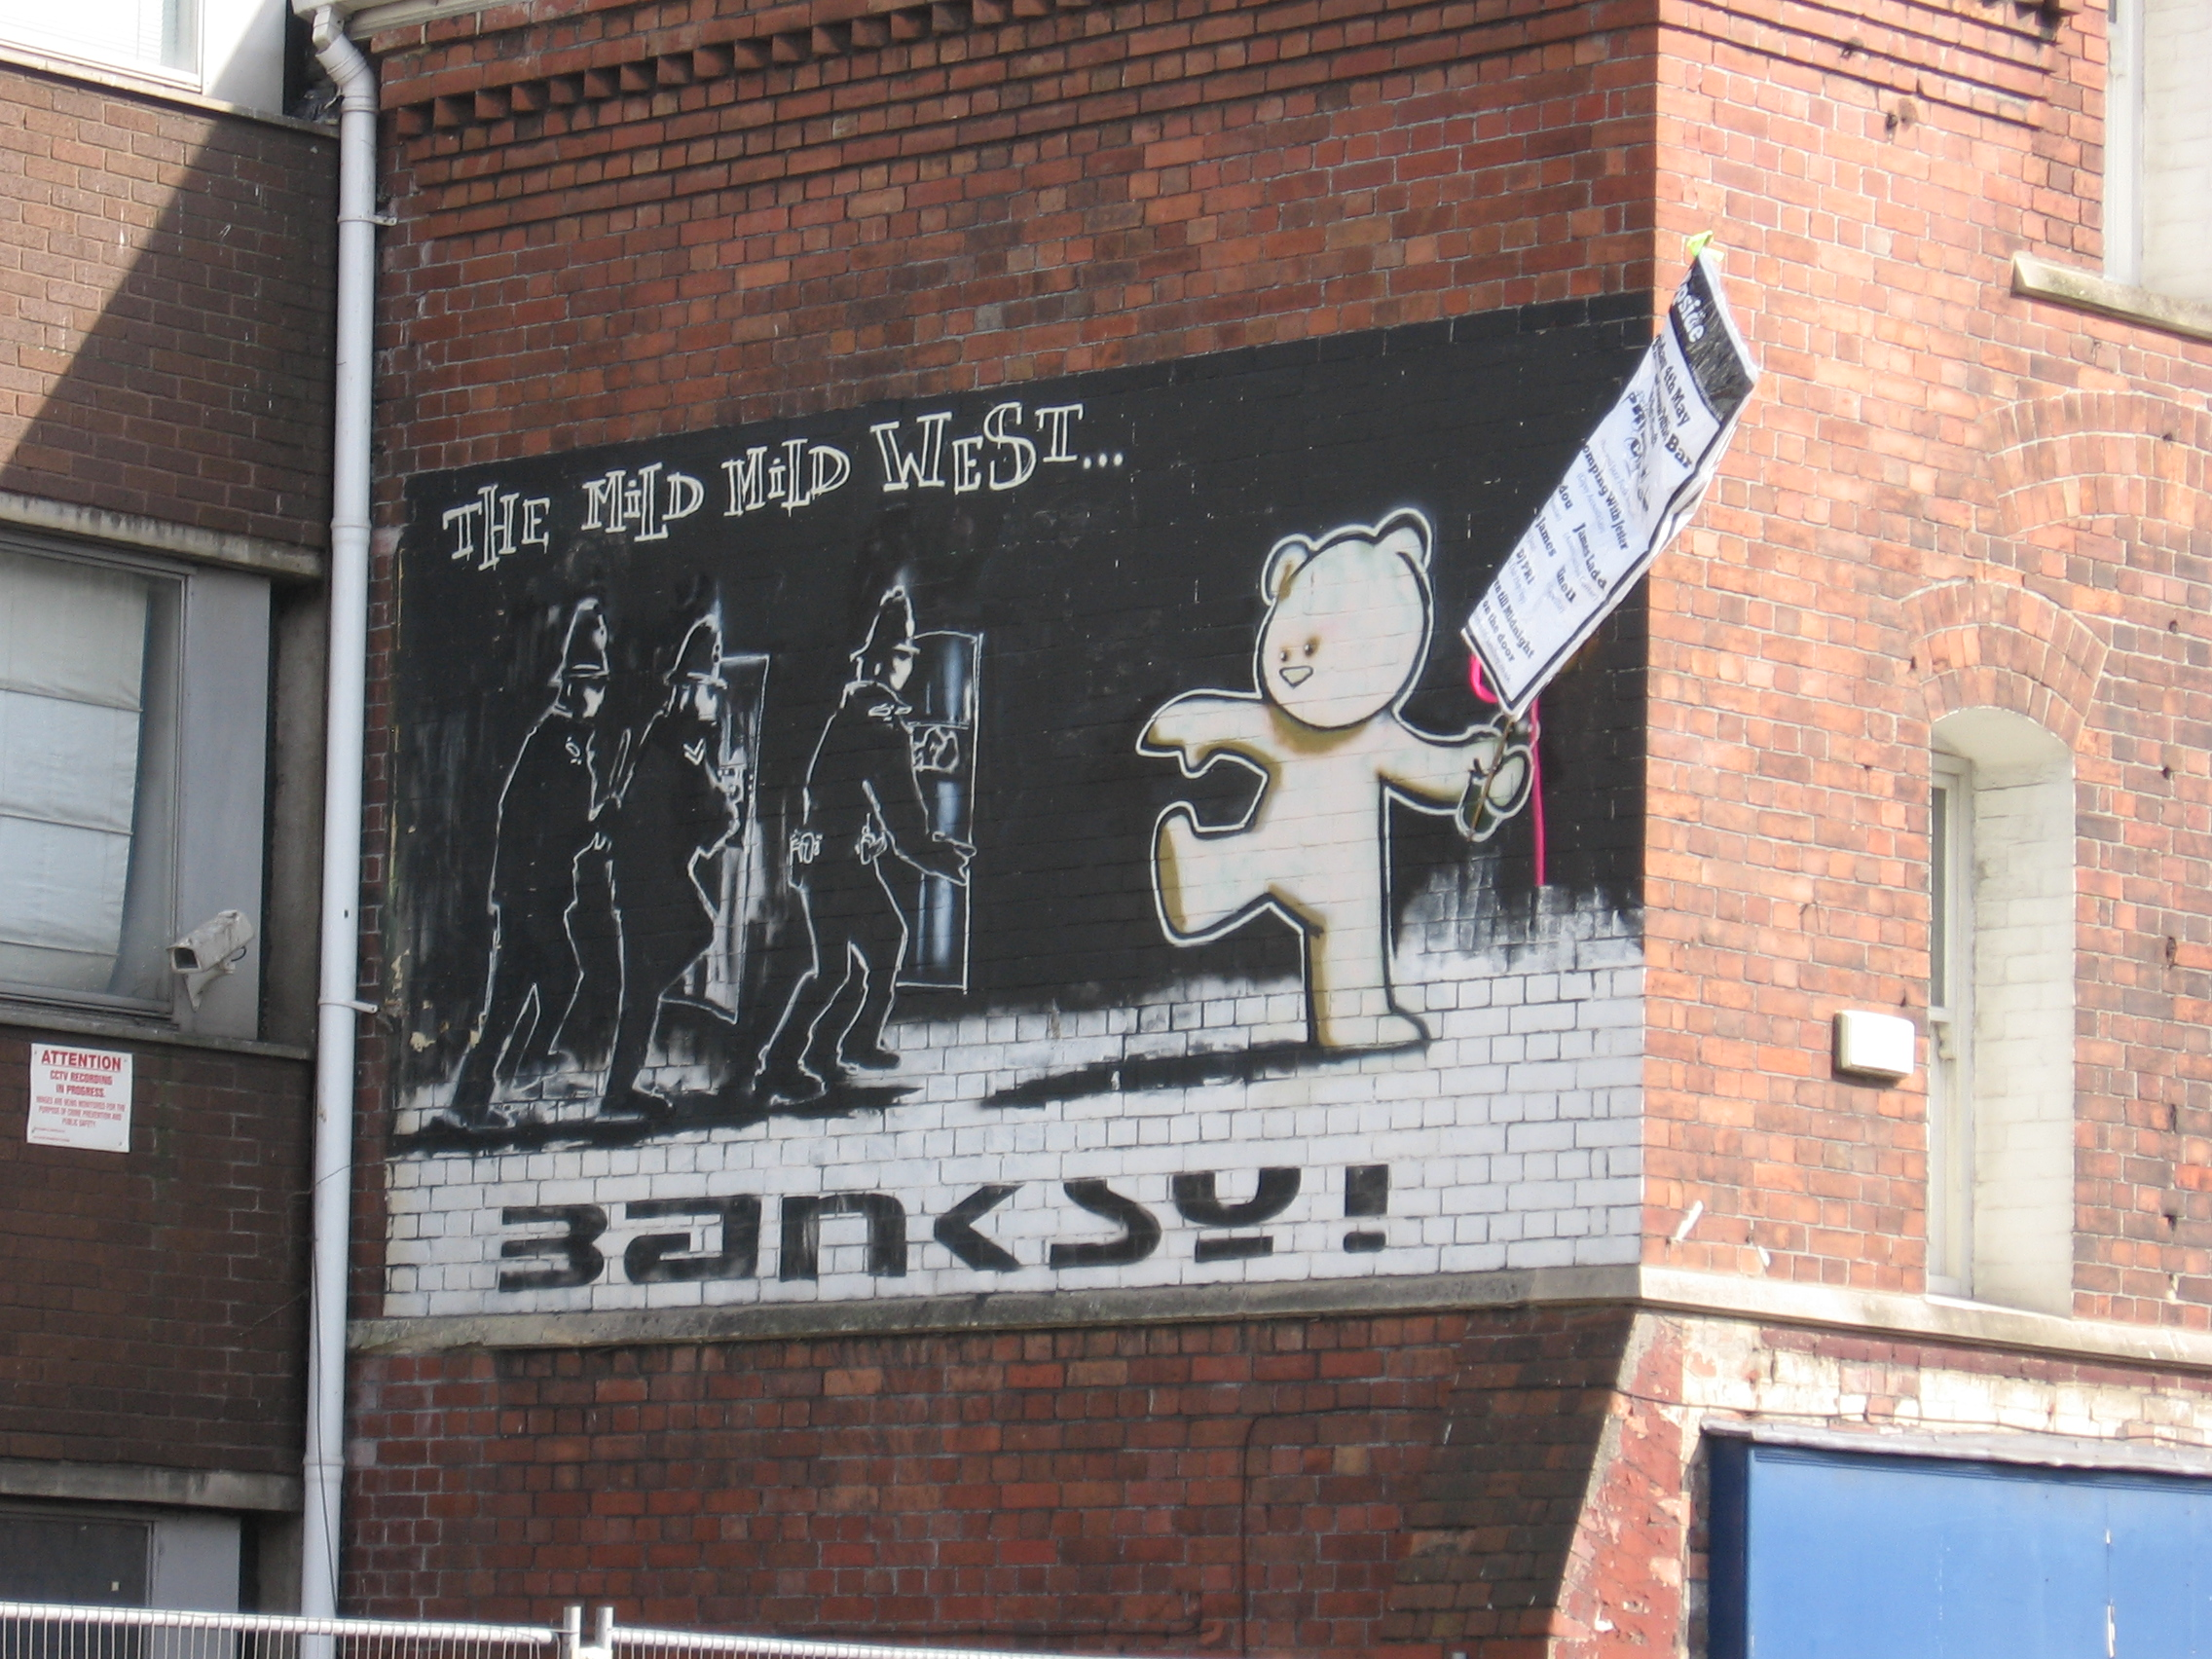 File:Banksy MIld Mild West and poster.jpg - Wikimedia Commons